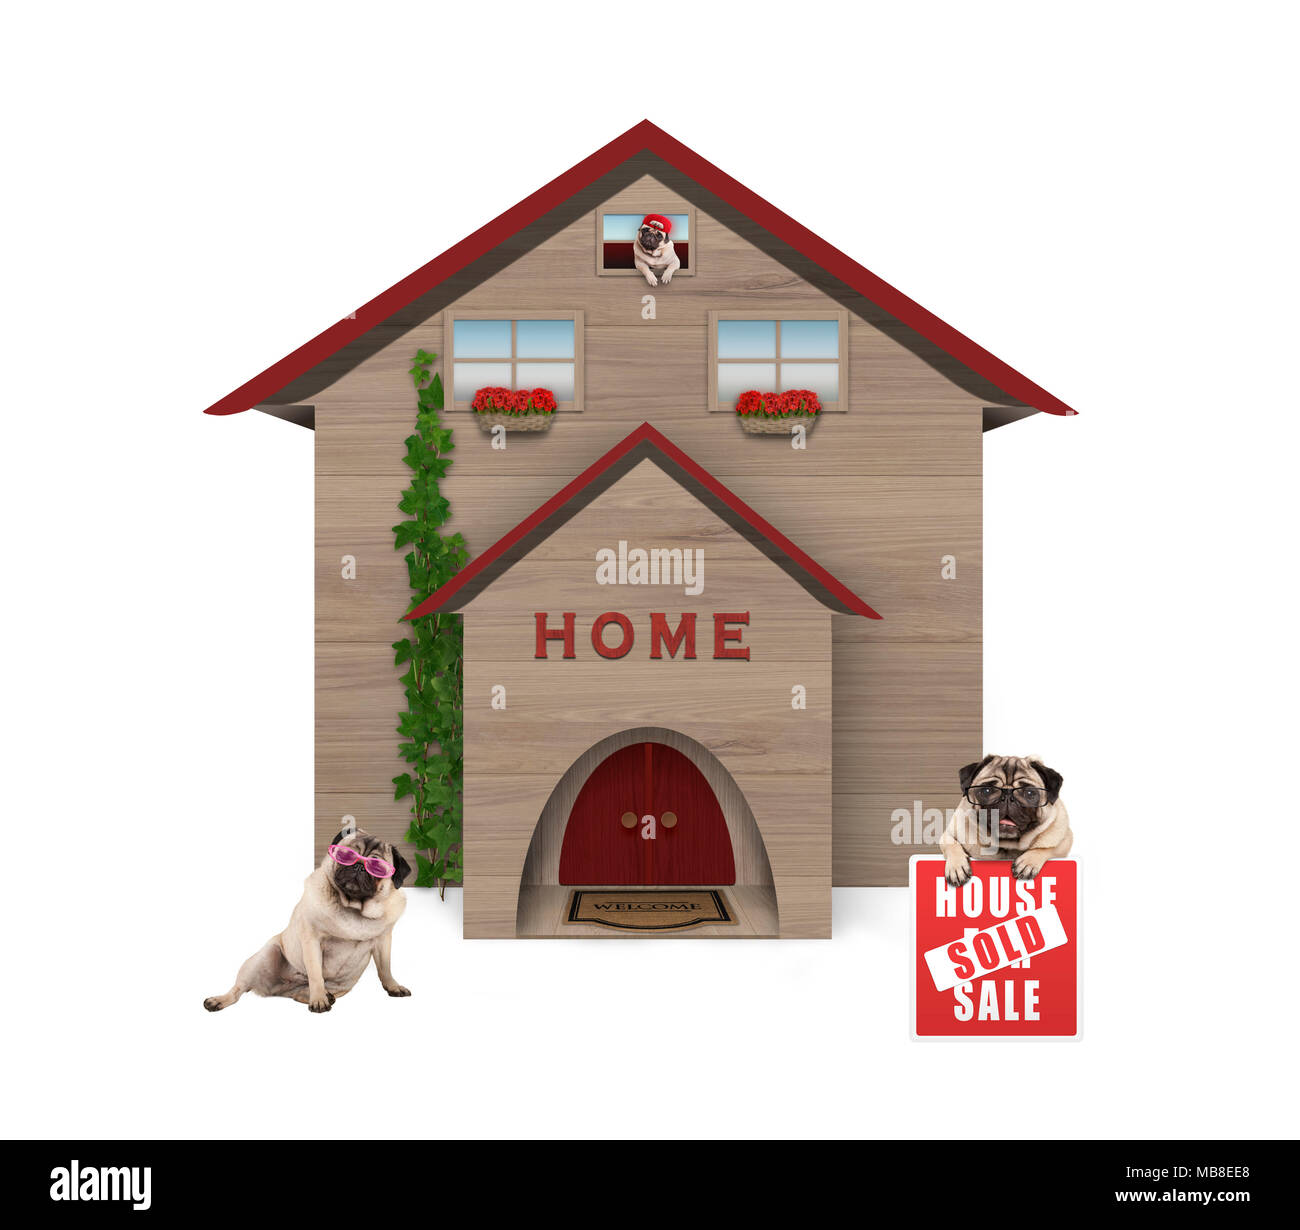 average middle class pug dog familiy, sitting down in garden with house sold sign at new home, isolated on white background Stock Photo